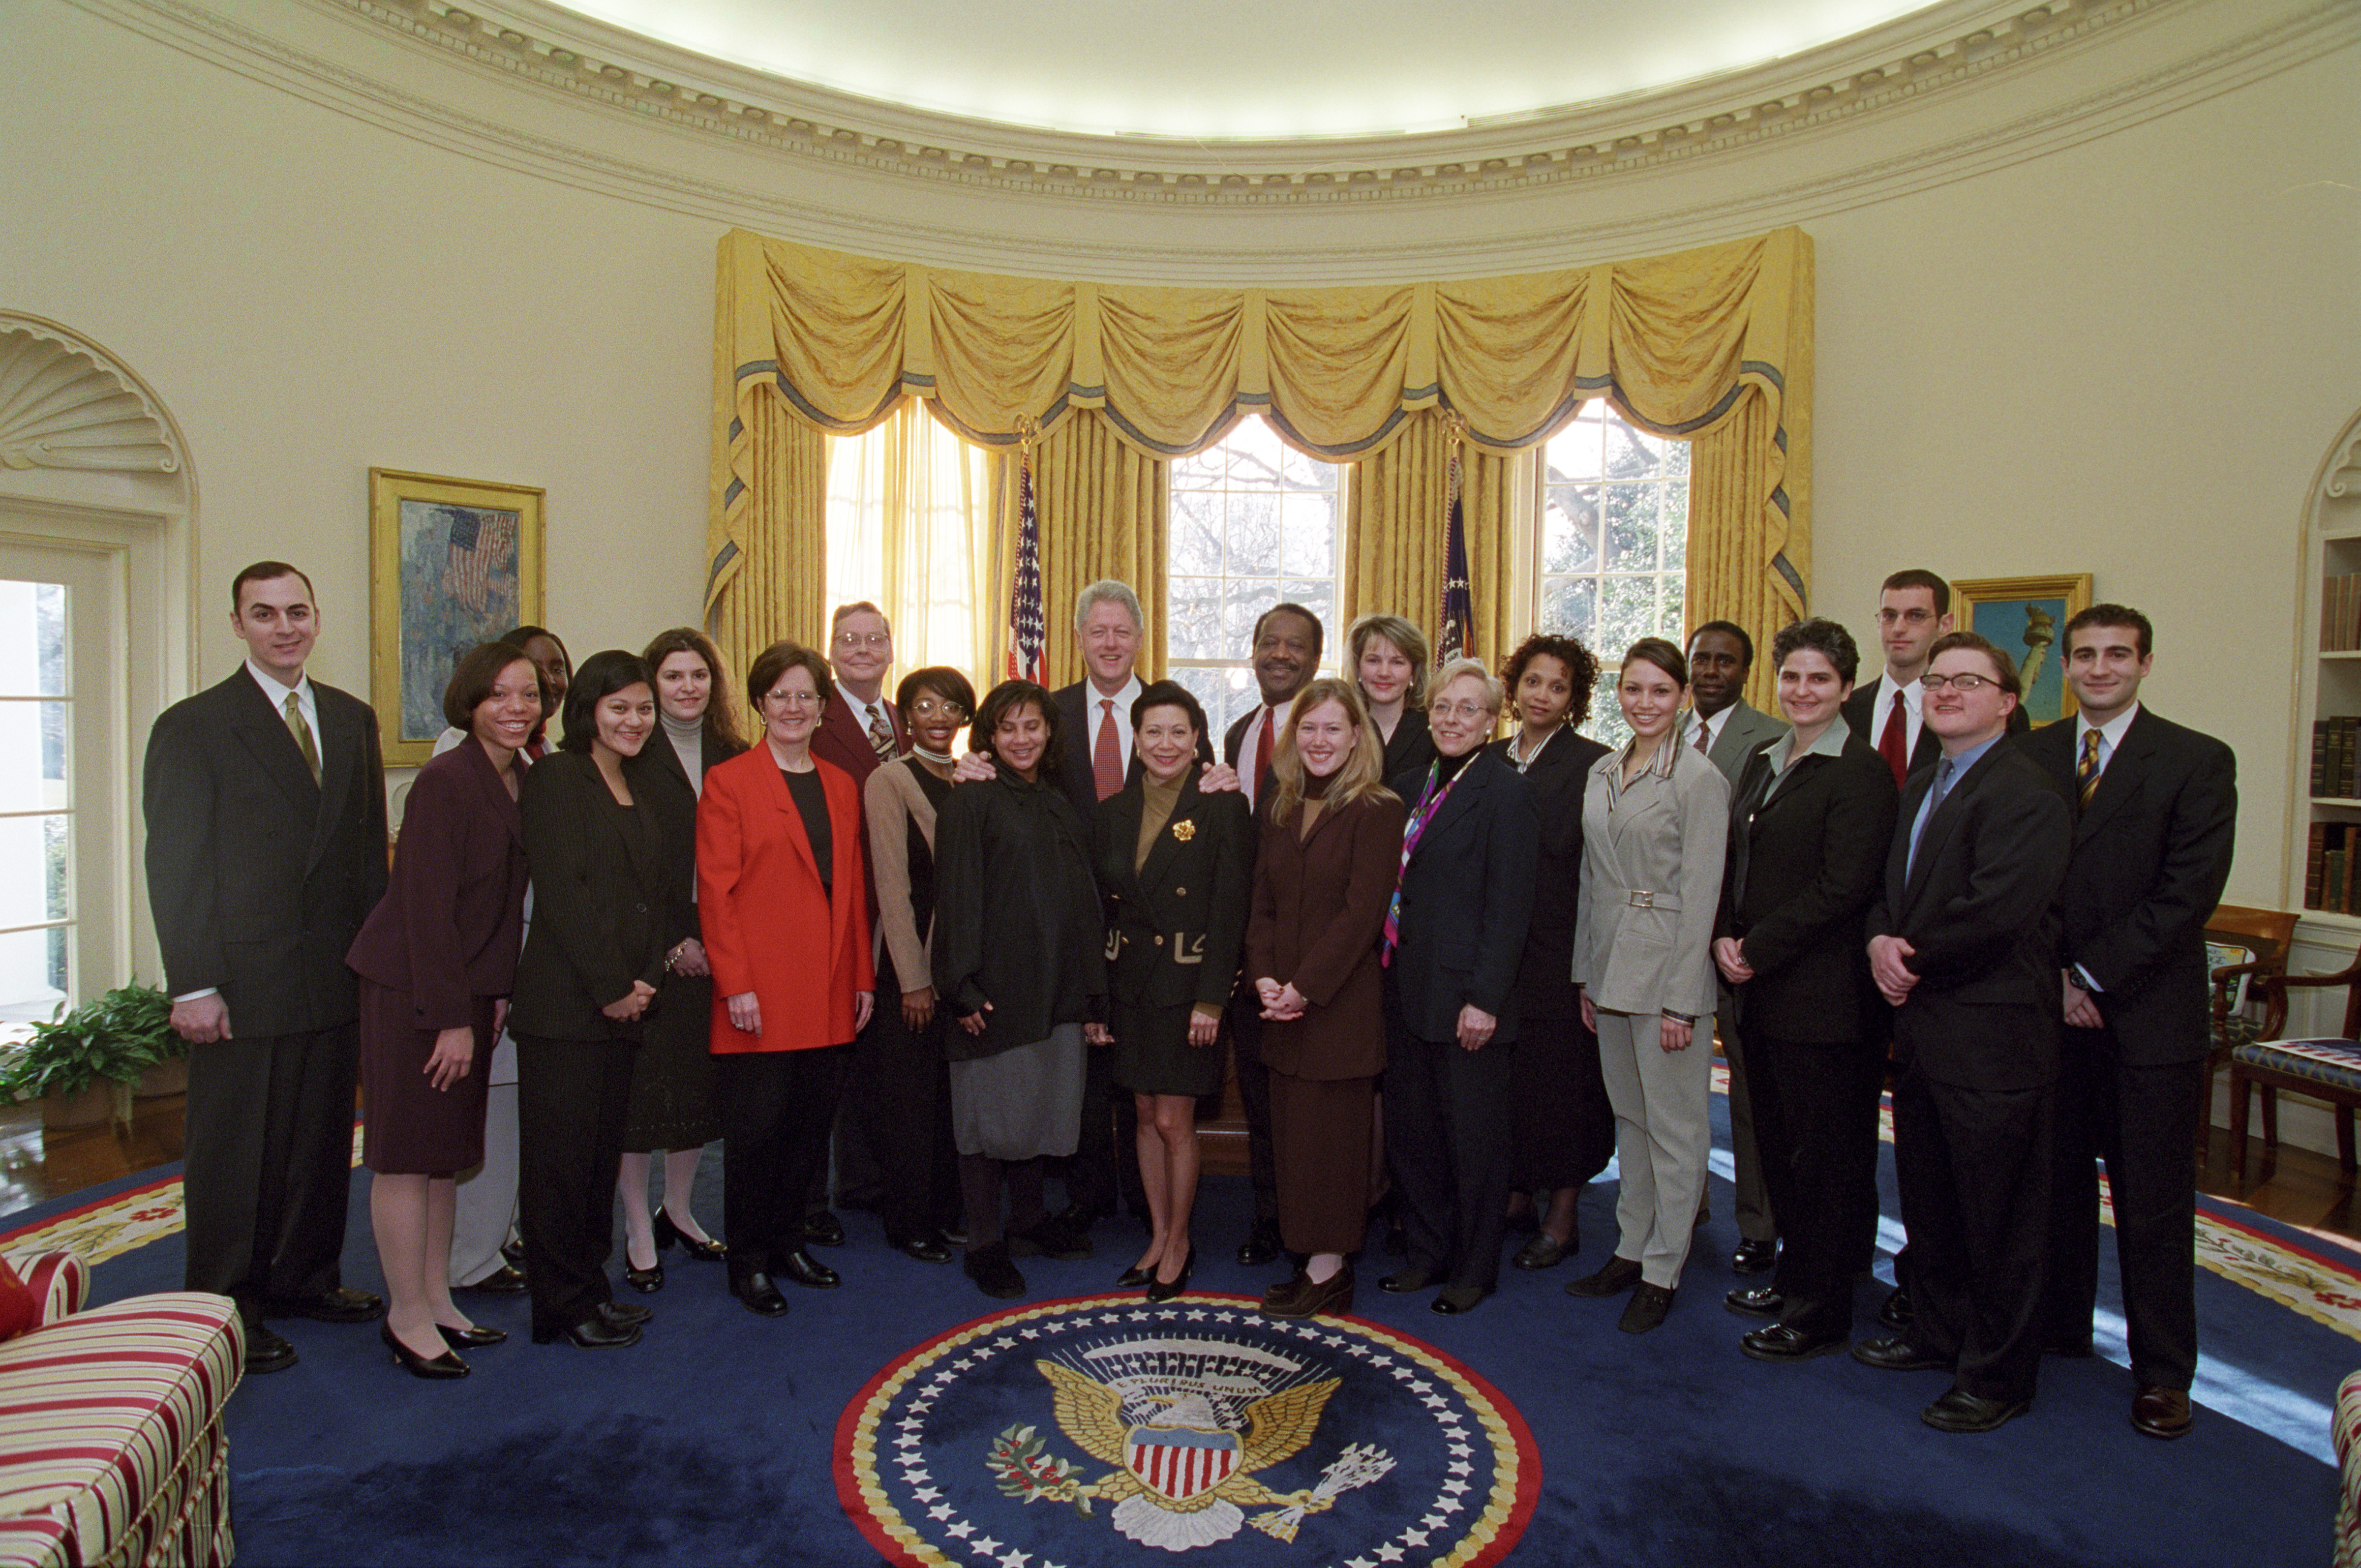 President Clinton takes photo with staff of the Office of Presidential Personnel in the Oval Office